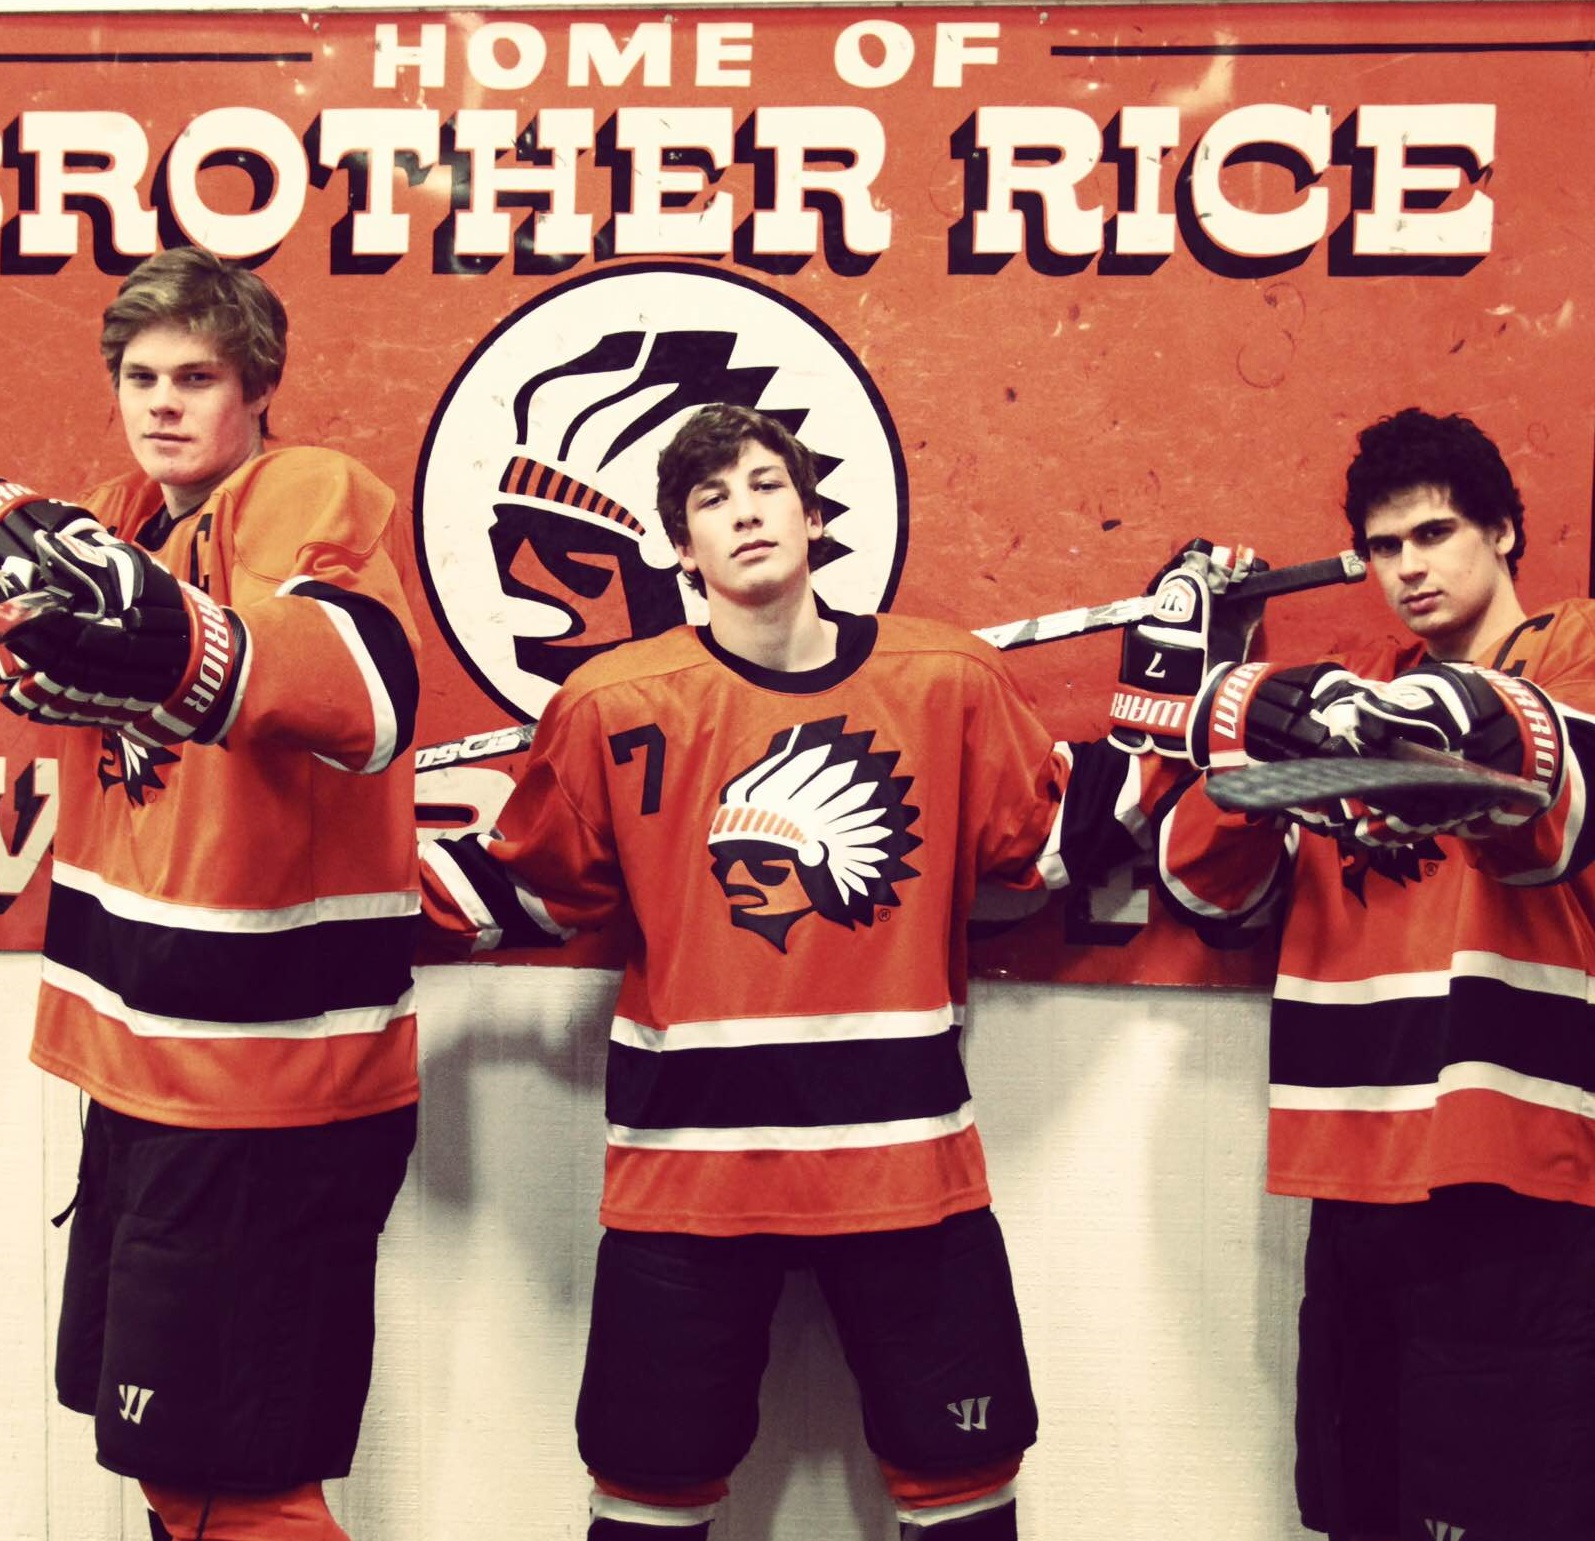 Brother Rice High School hockey star Russell Cicerone poses in the middle. (via Cicerones)